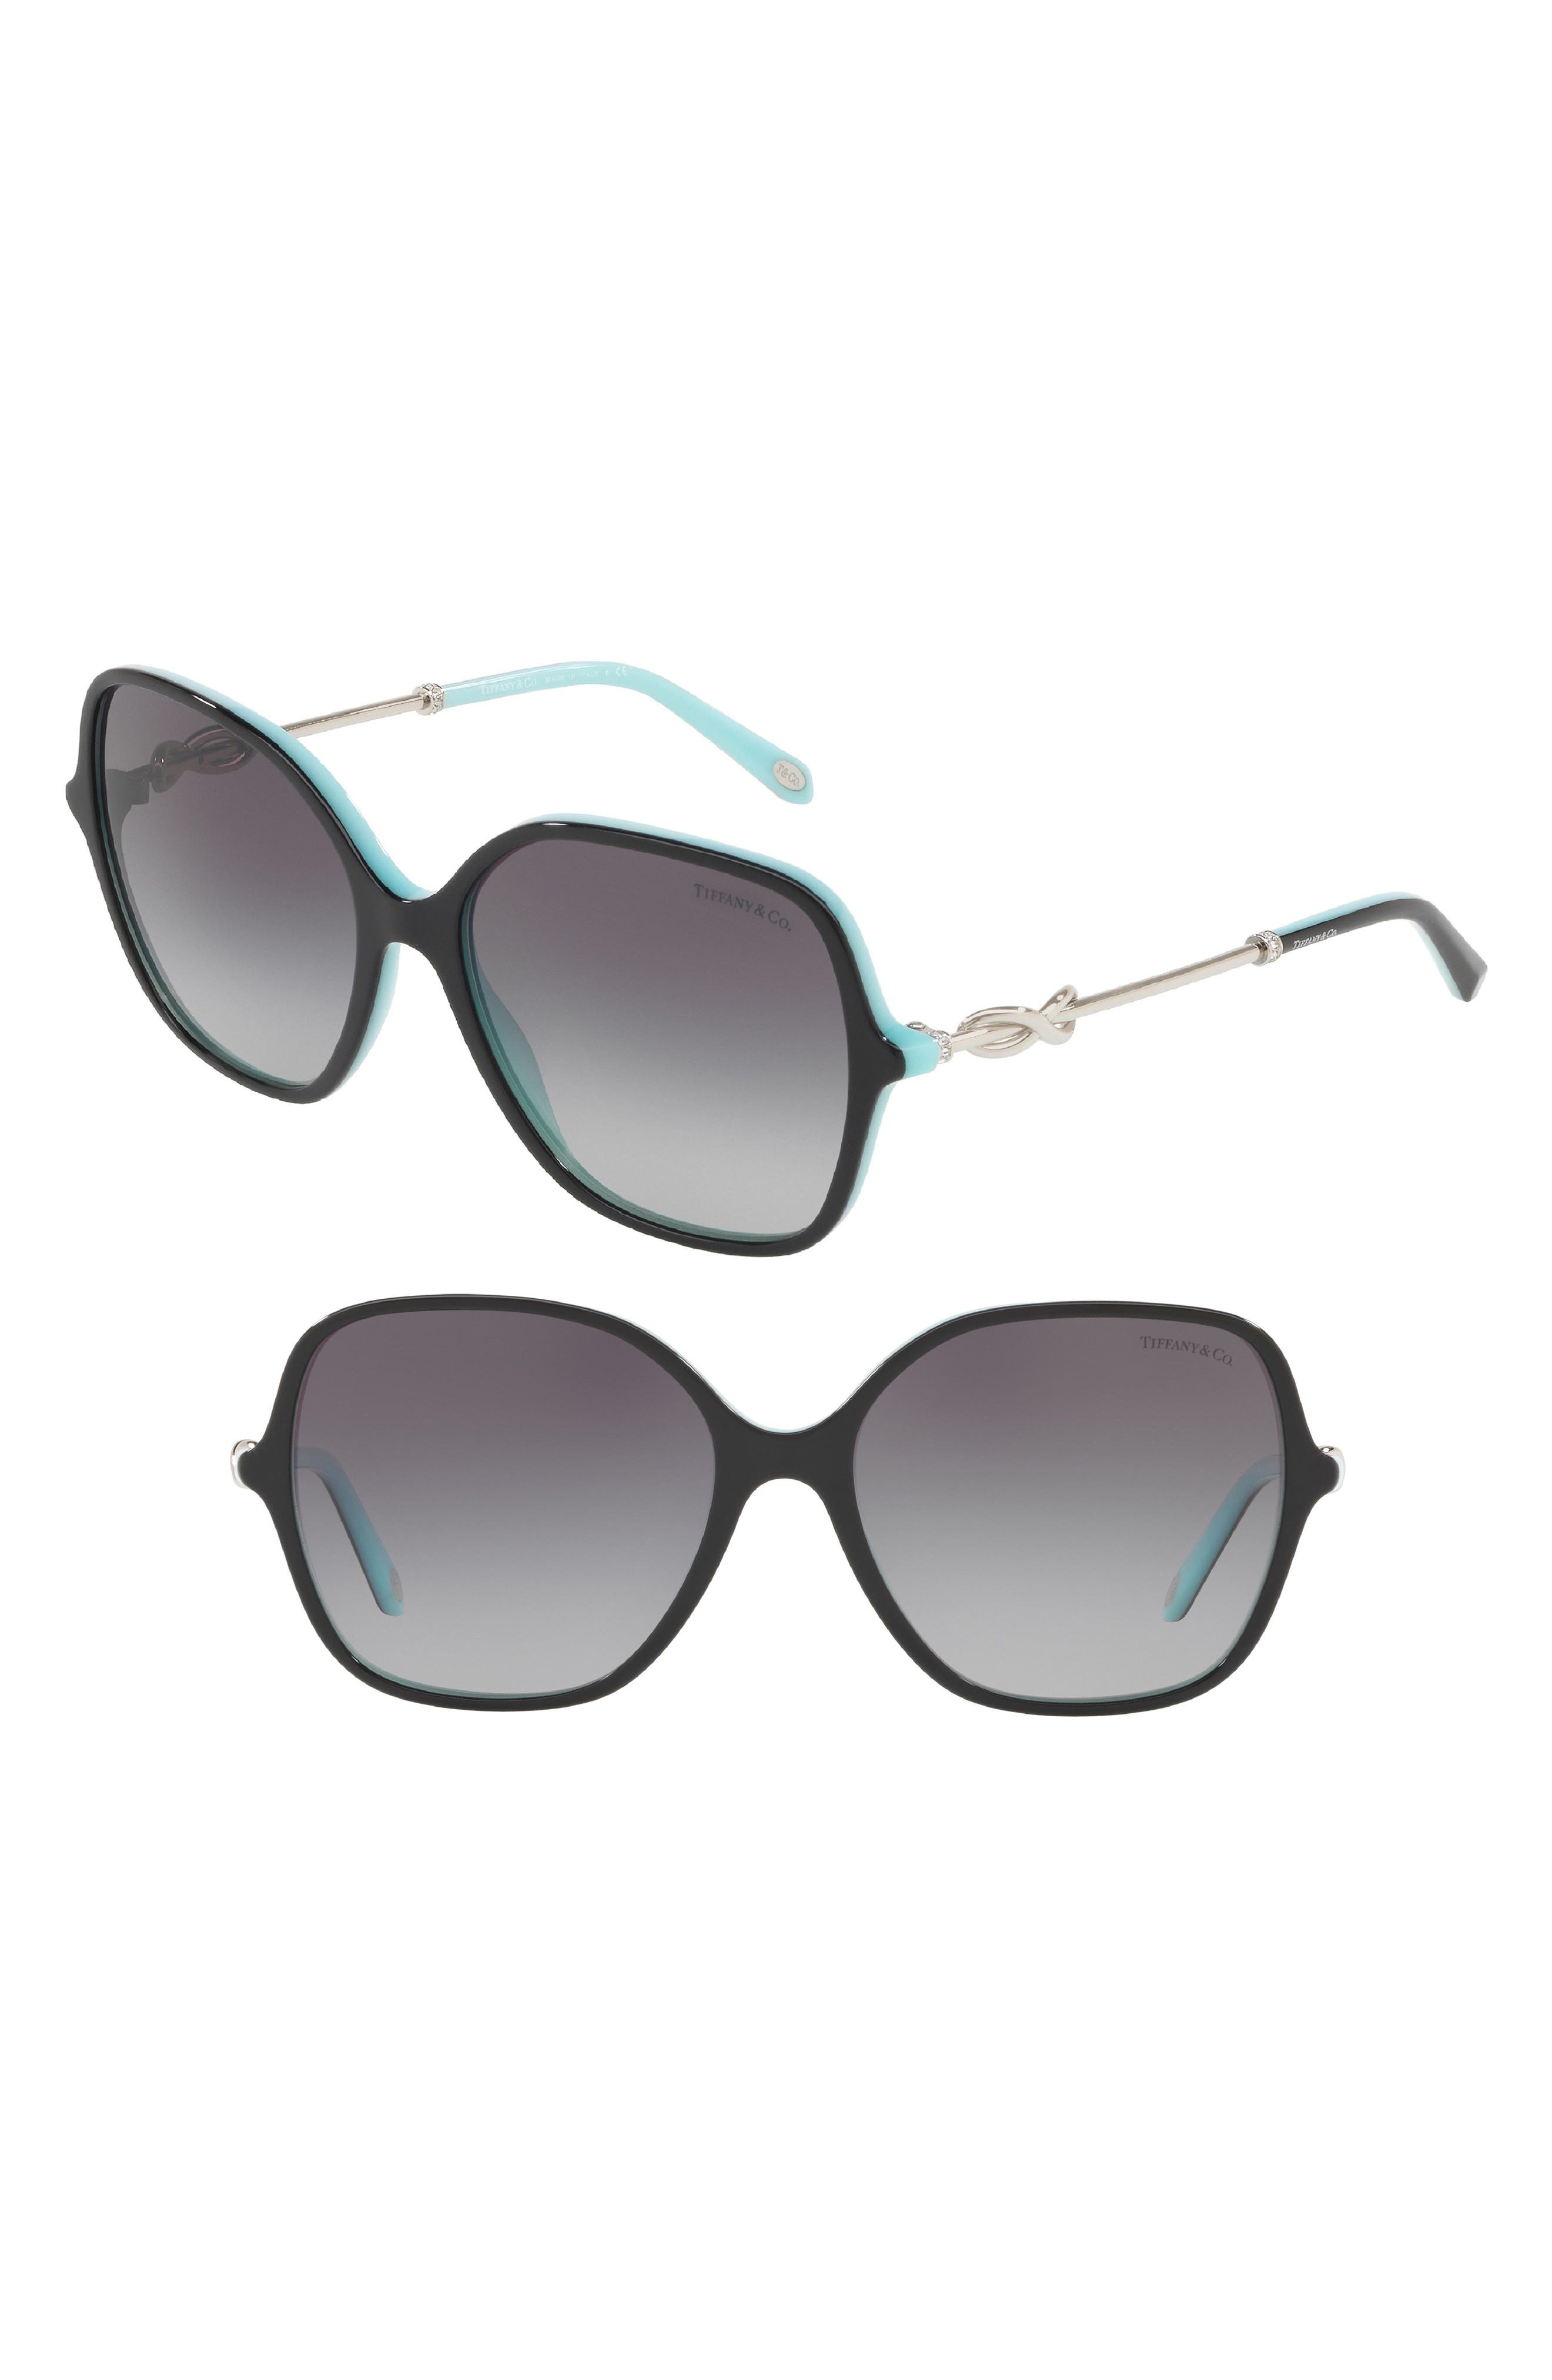 366ea8a378f Tiffany   Co. Sunglasses for Women